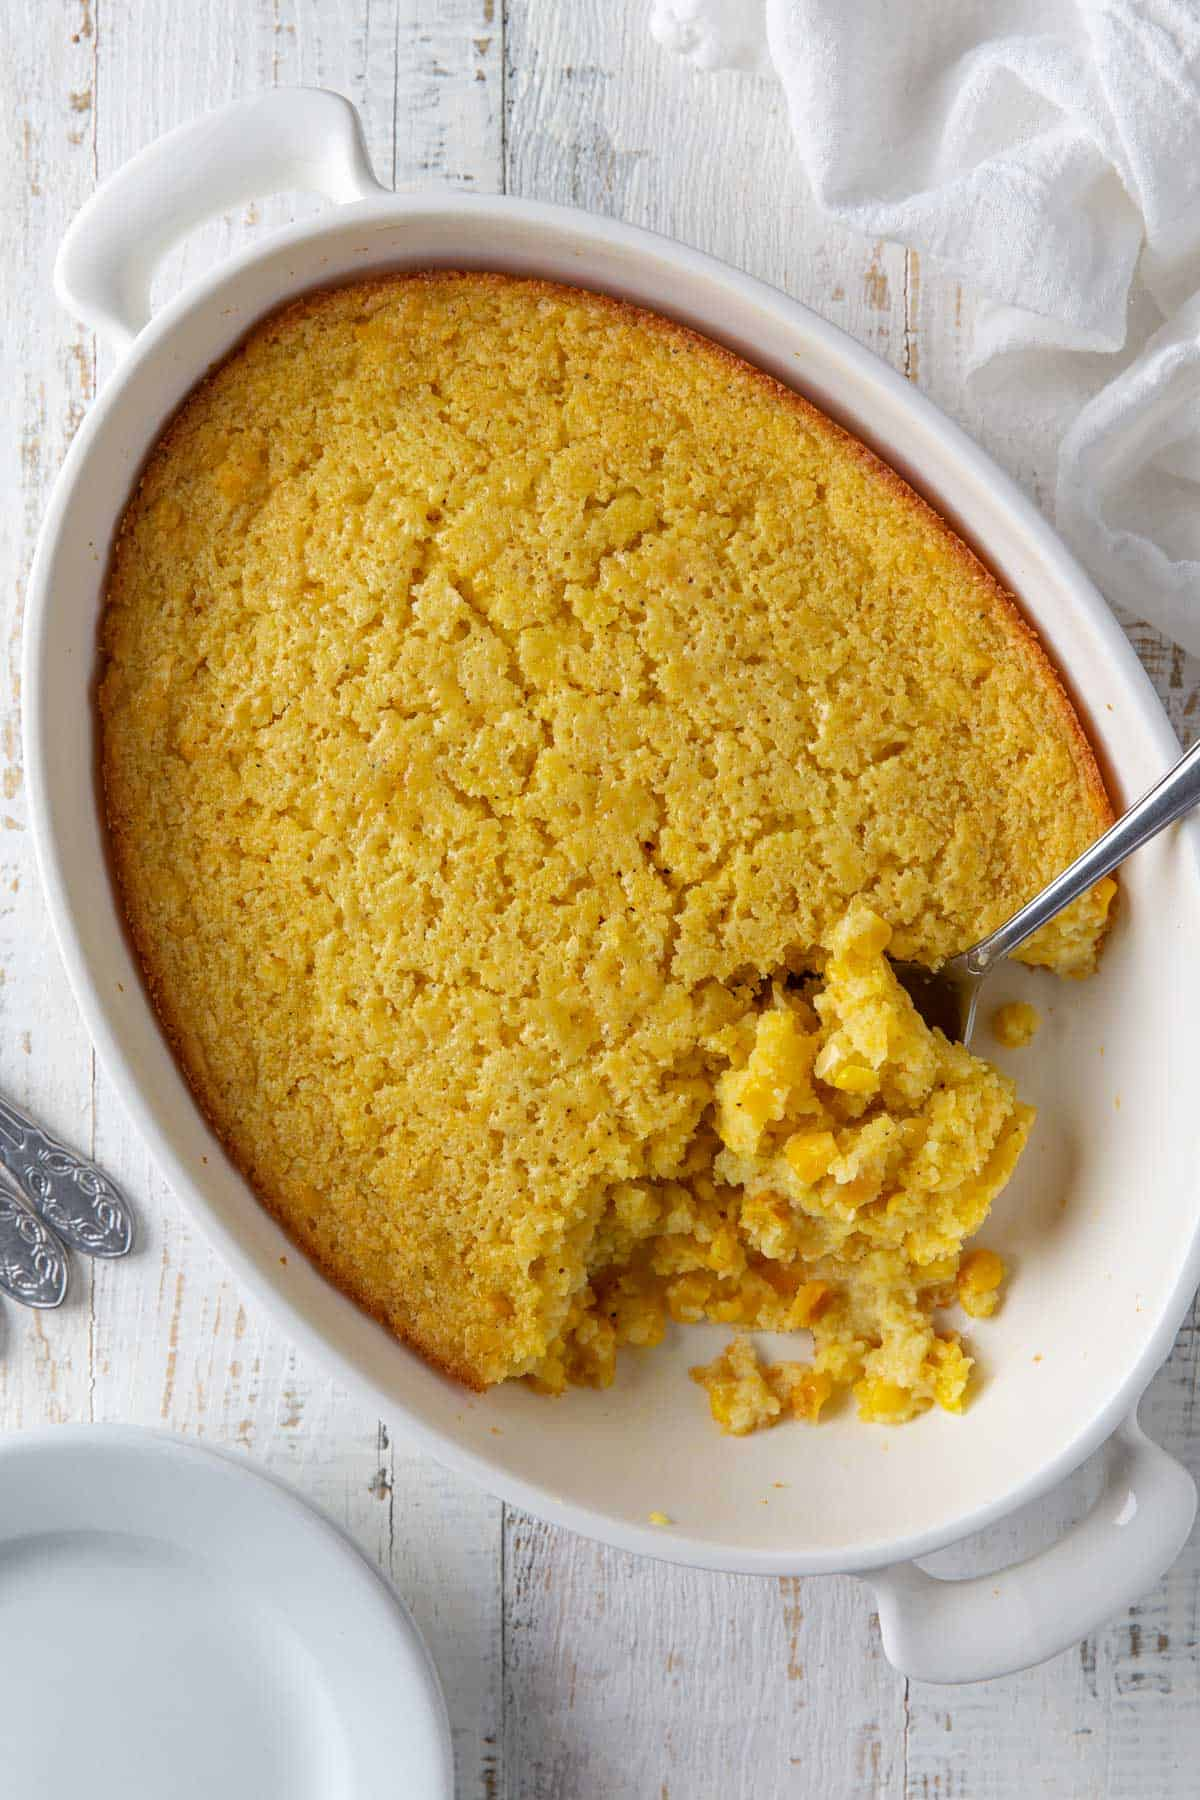 Jiffy corn pudding in an oval white baking dish with a serving spoon.